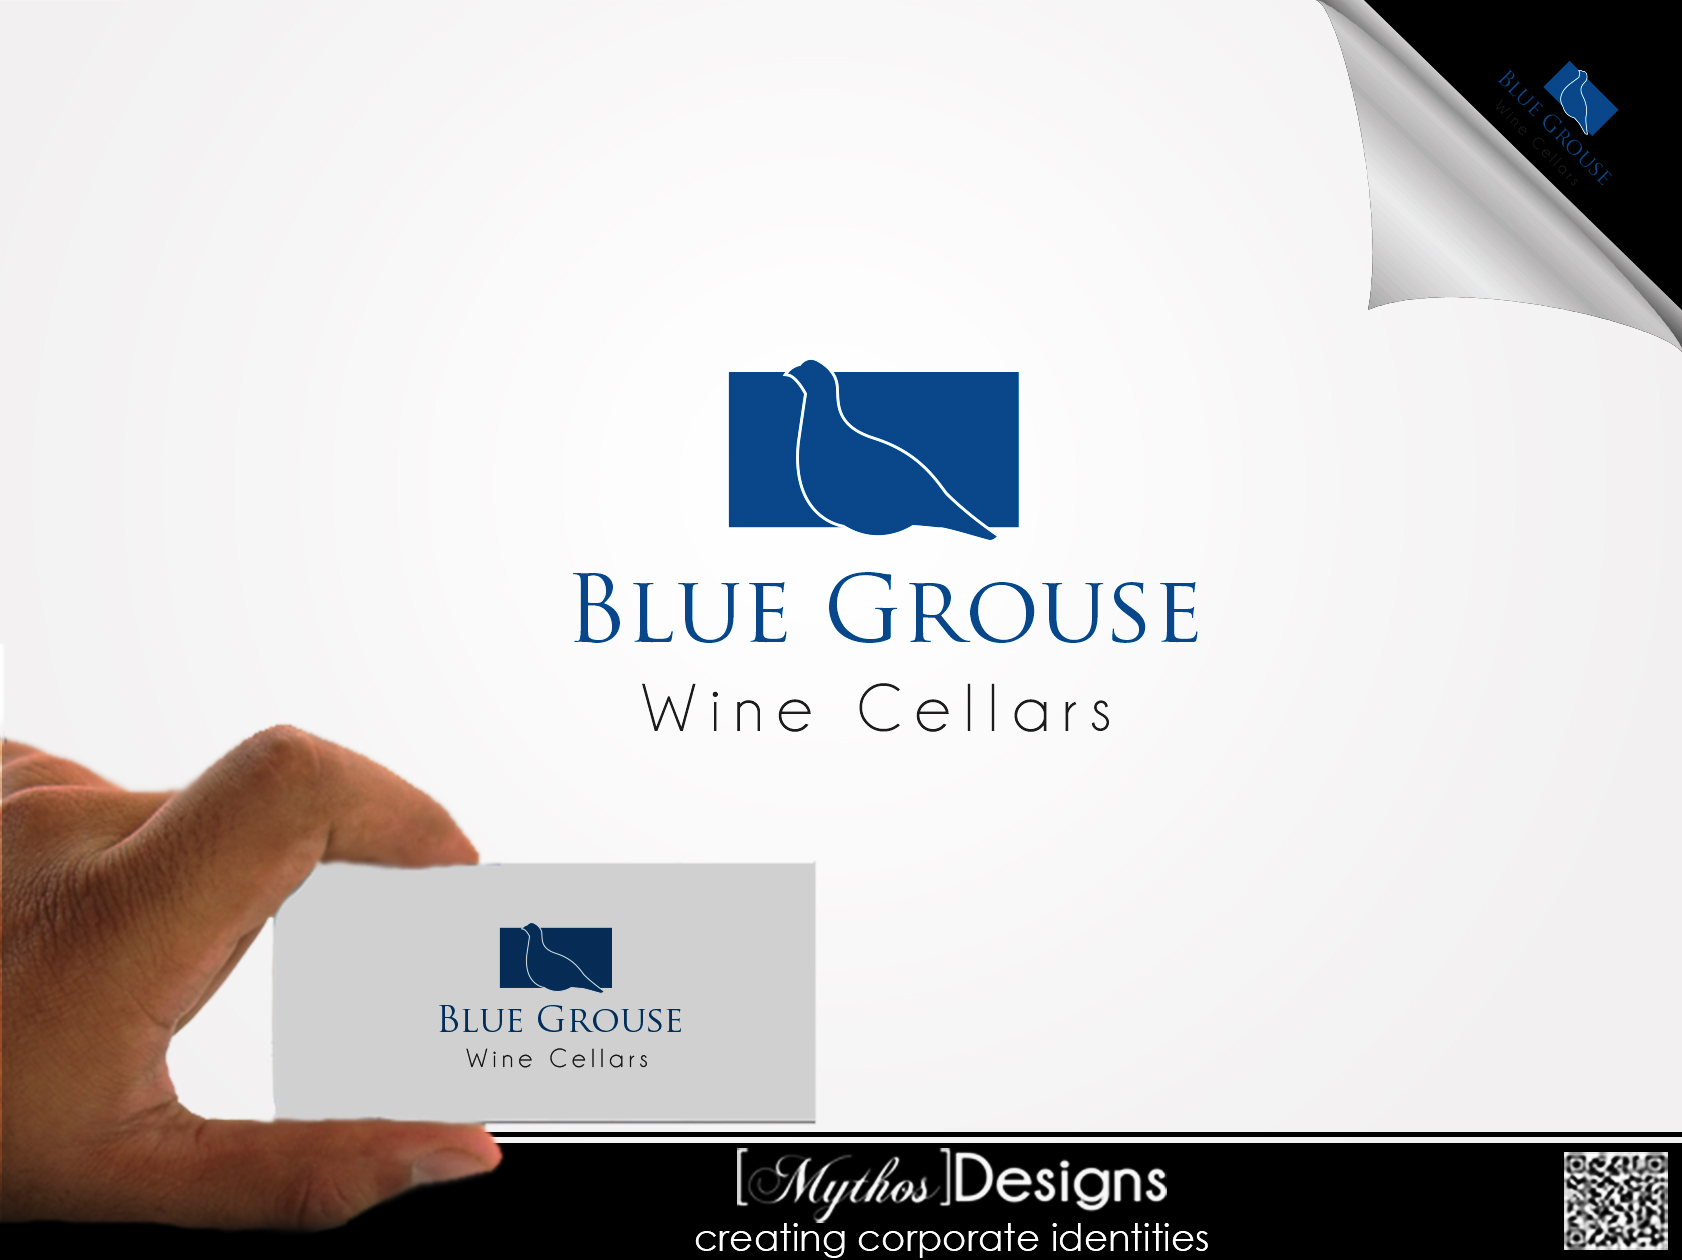 Logo Design by Mythos Designs - Entry No. 17 in the Logo Design Contest Creative Logo Design for Blue Grouse Wine Cellars.